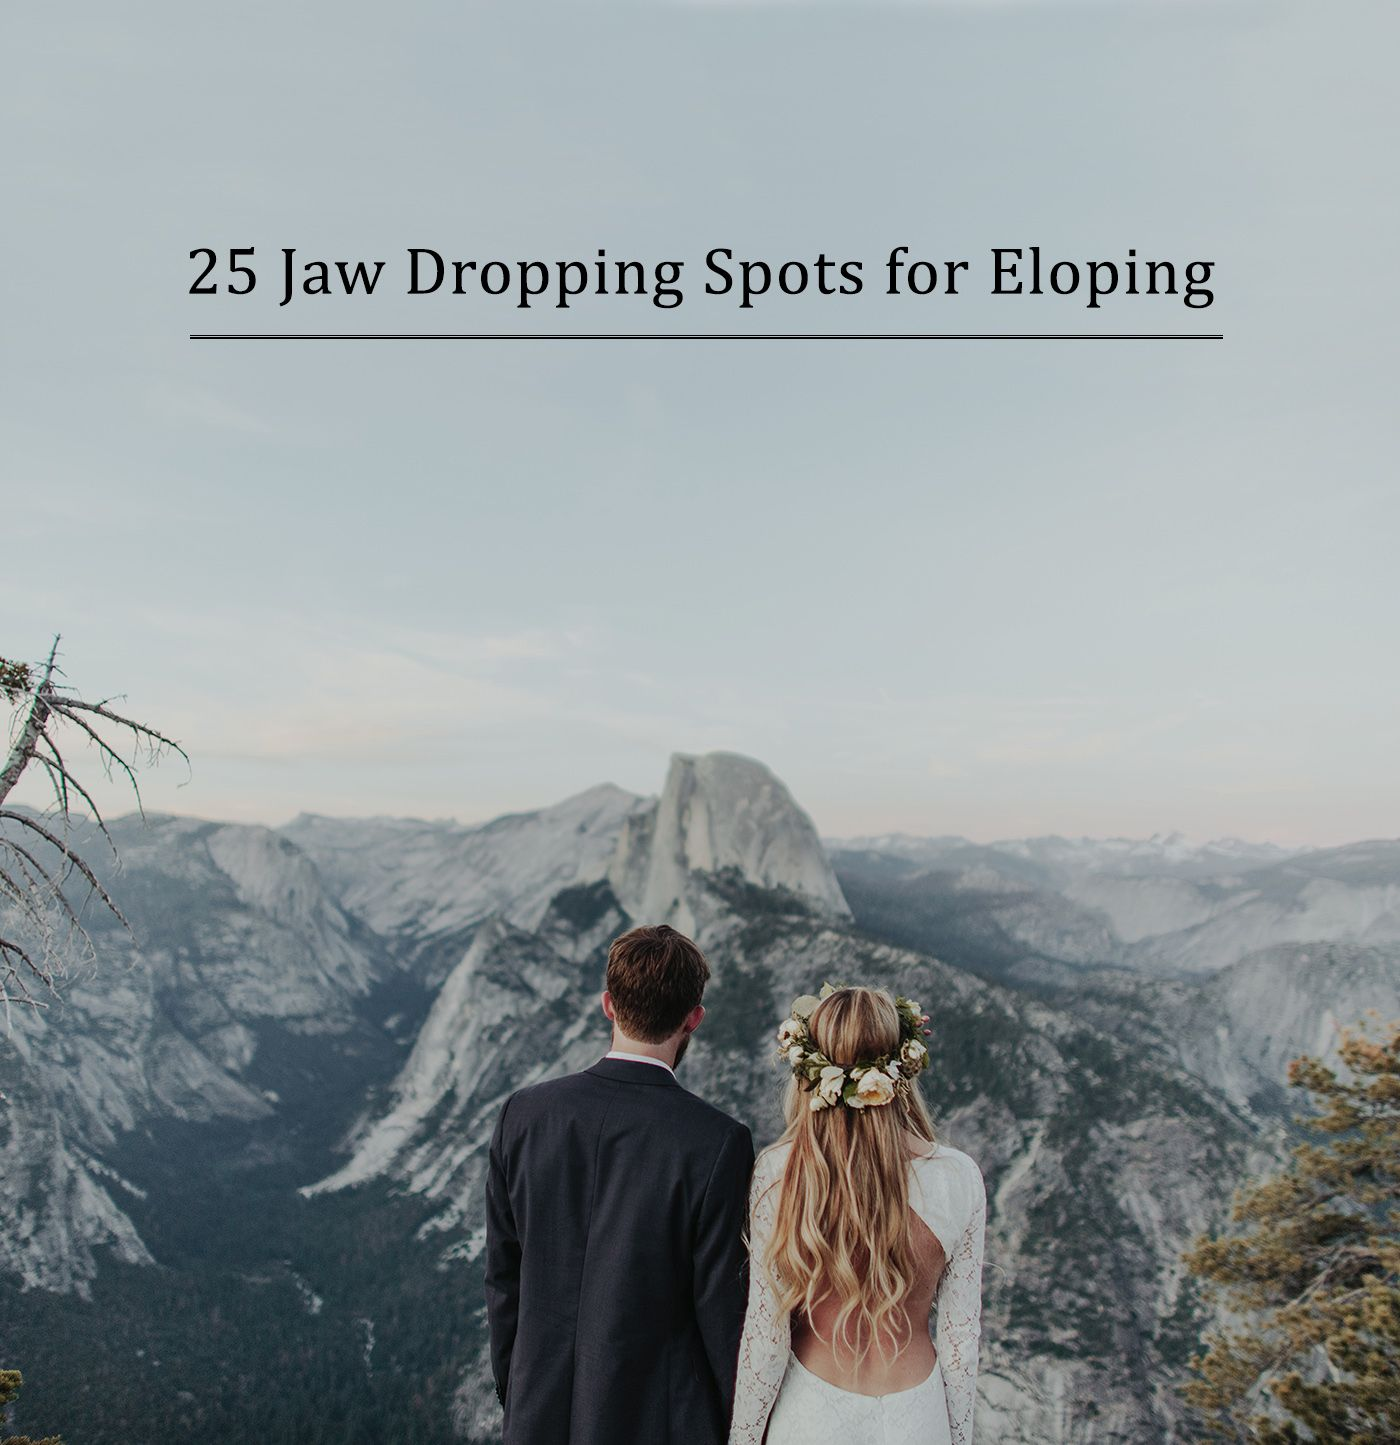 Wedding Elopement Ideas: 25 Jaw-Dropping Spots That Will Make You Want To Elope